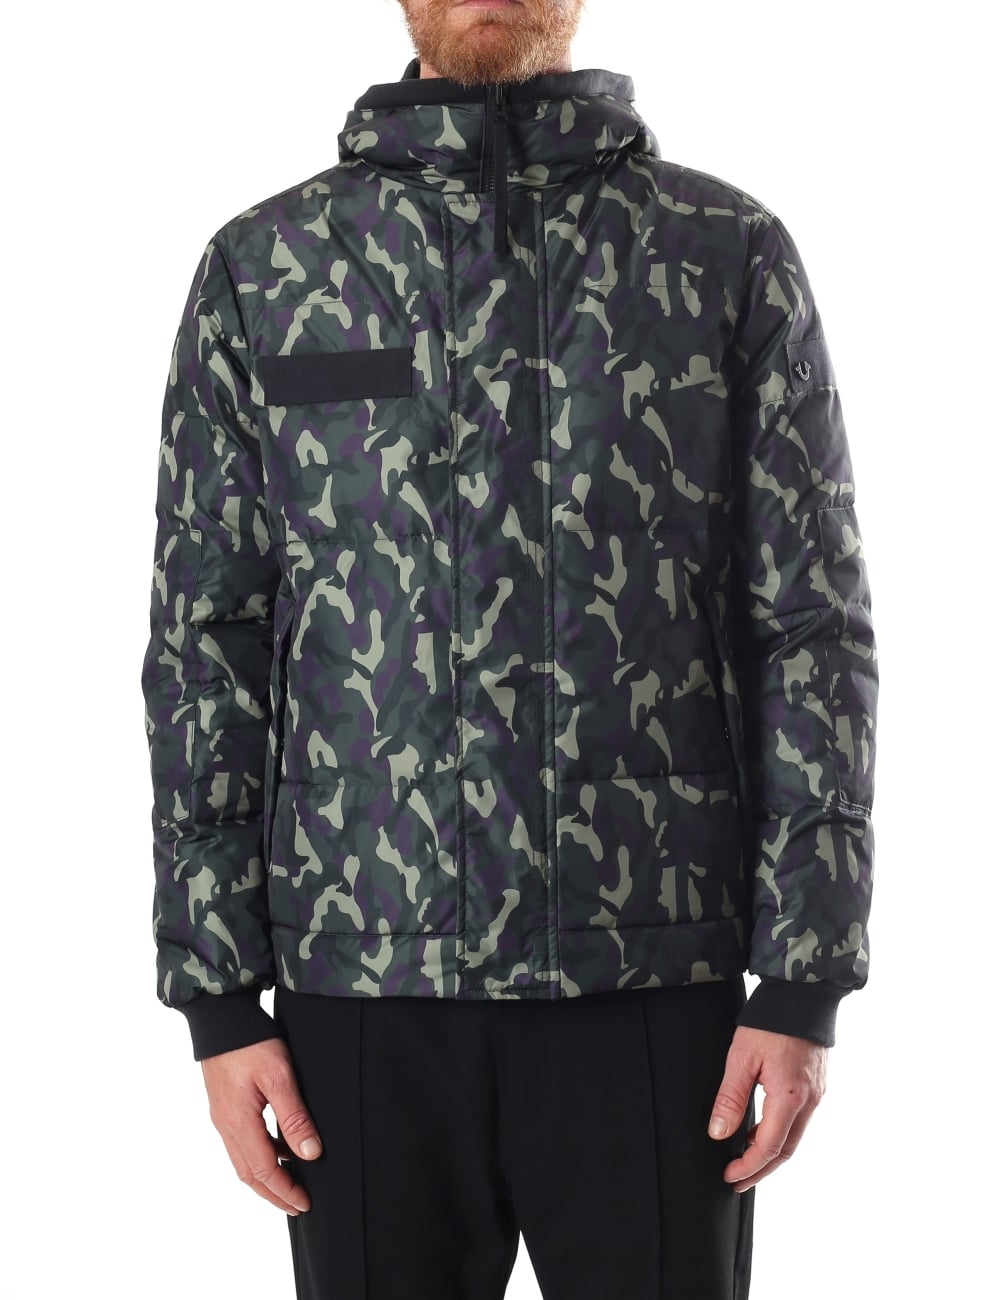 4f7a01e41ee0c True Religion Hooded Men's Camouflage Jacket